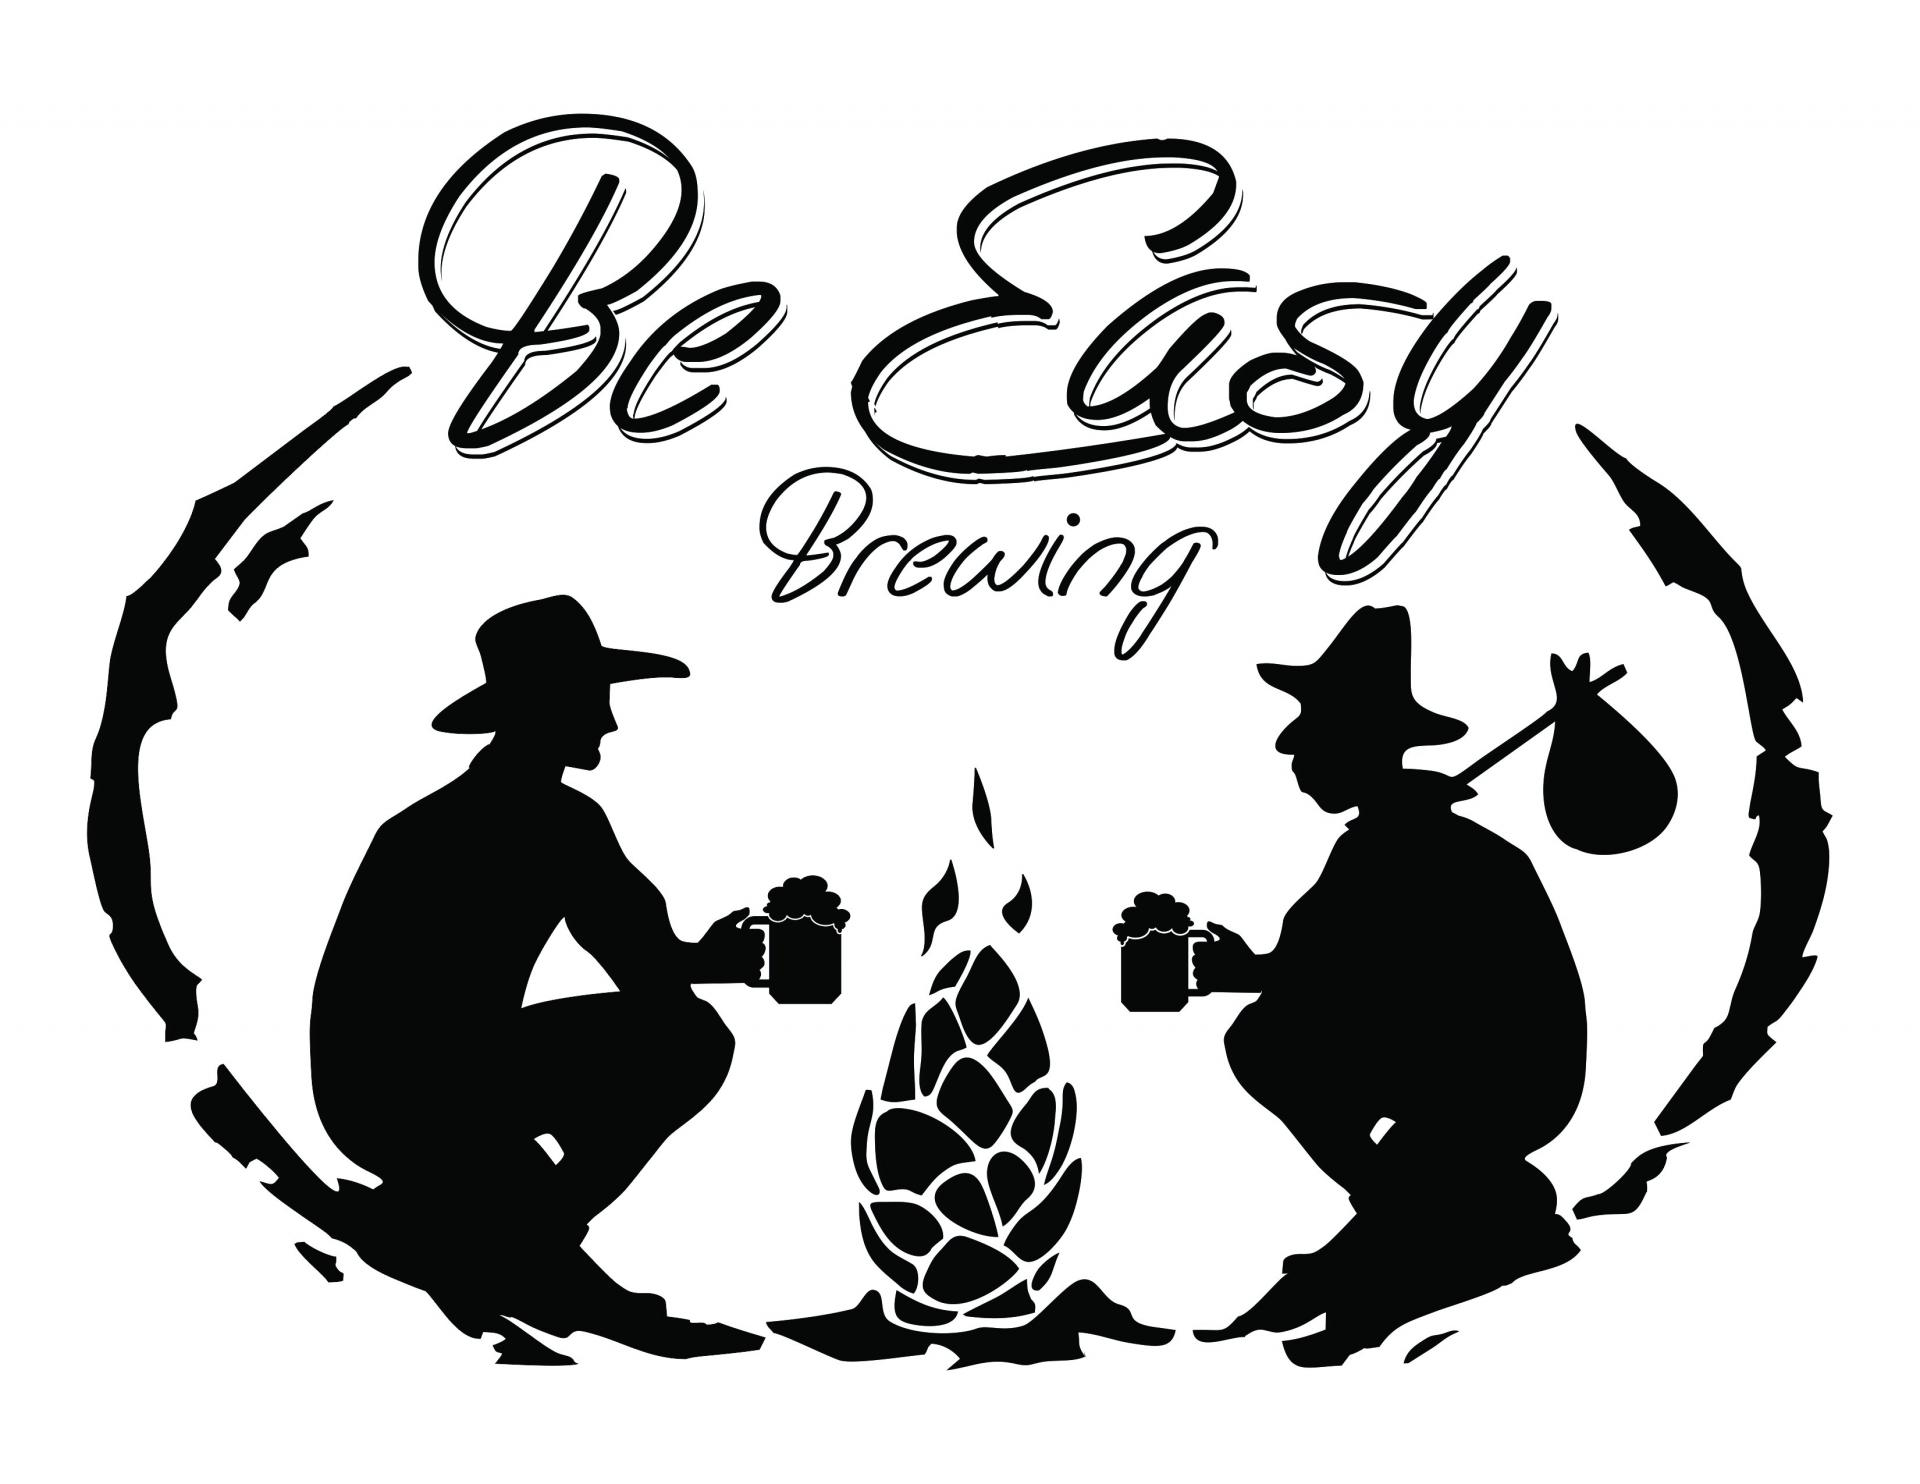 be easy brewing